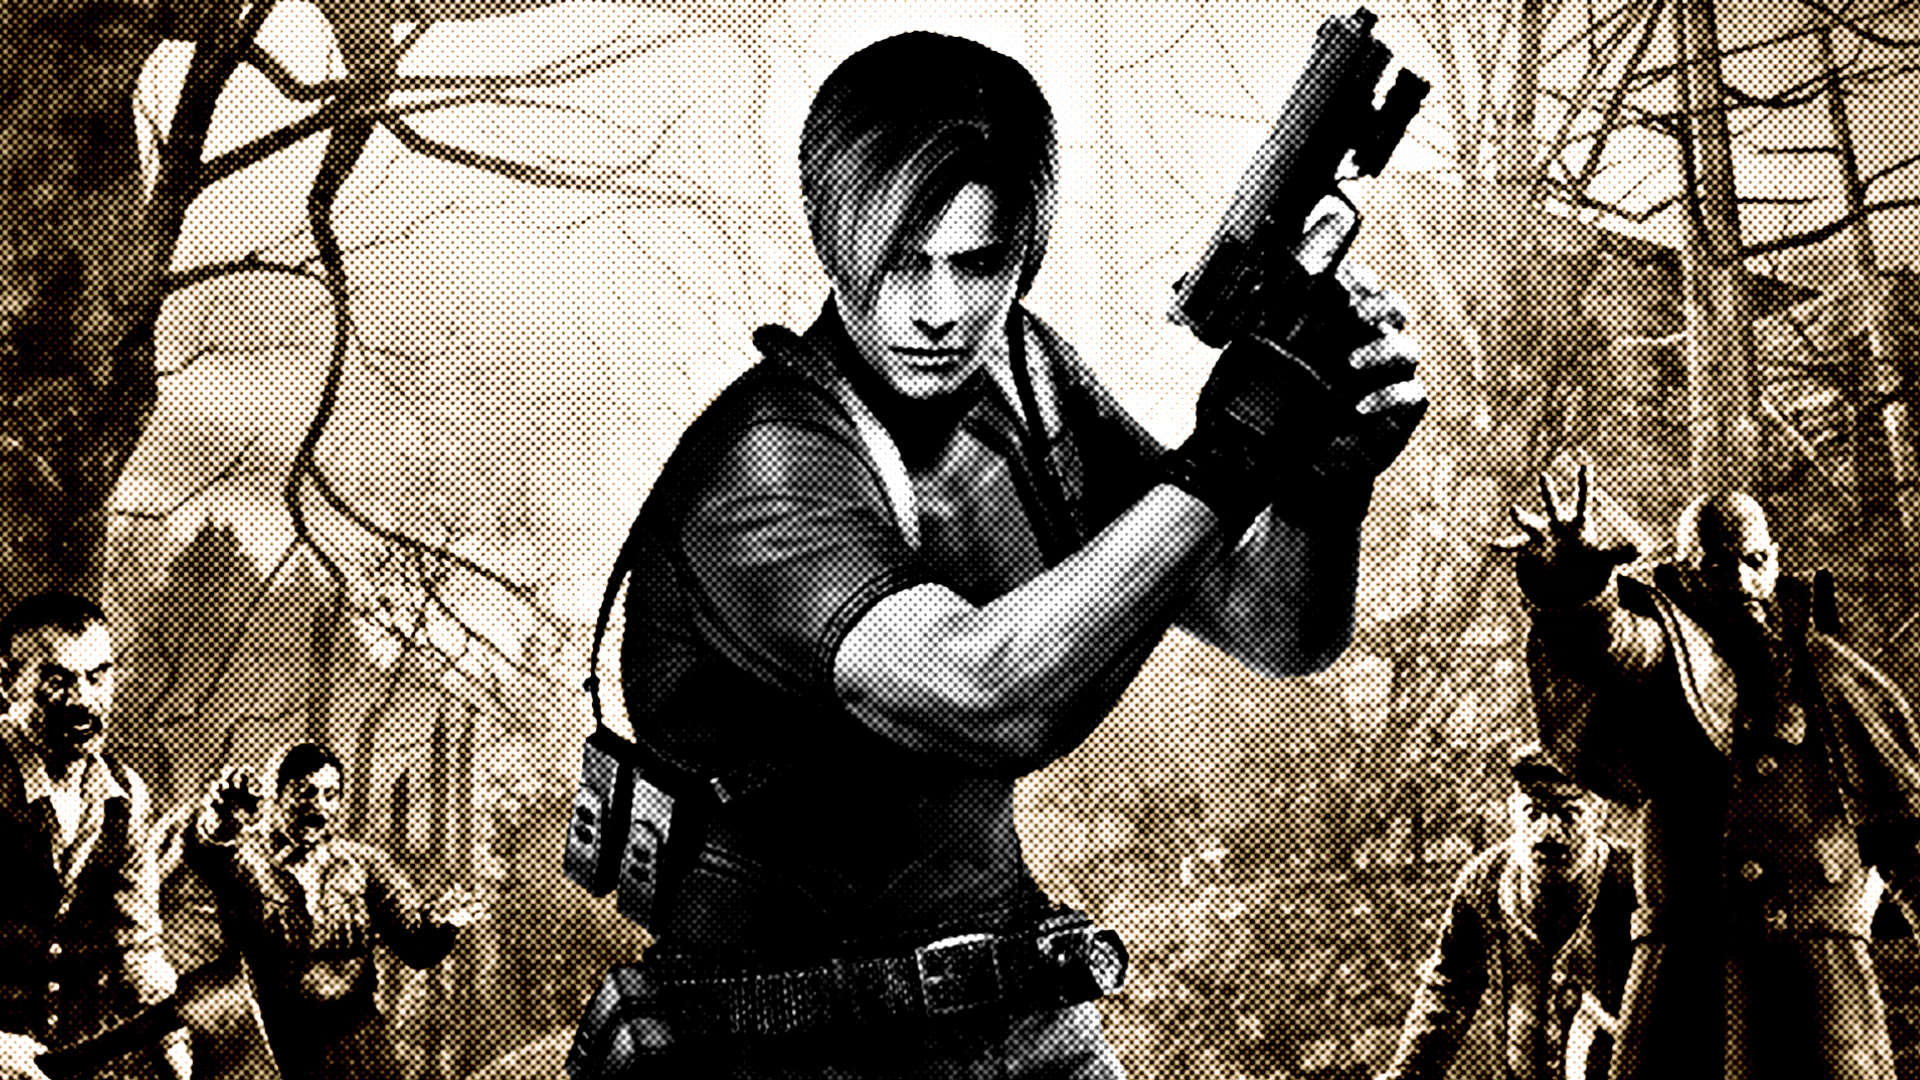 The ultimate guide to getting into the Resident Evil games